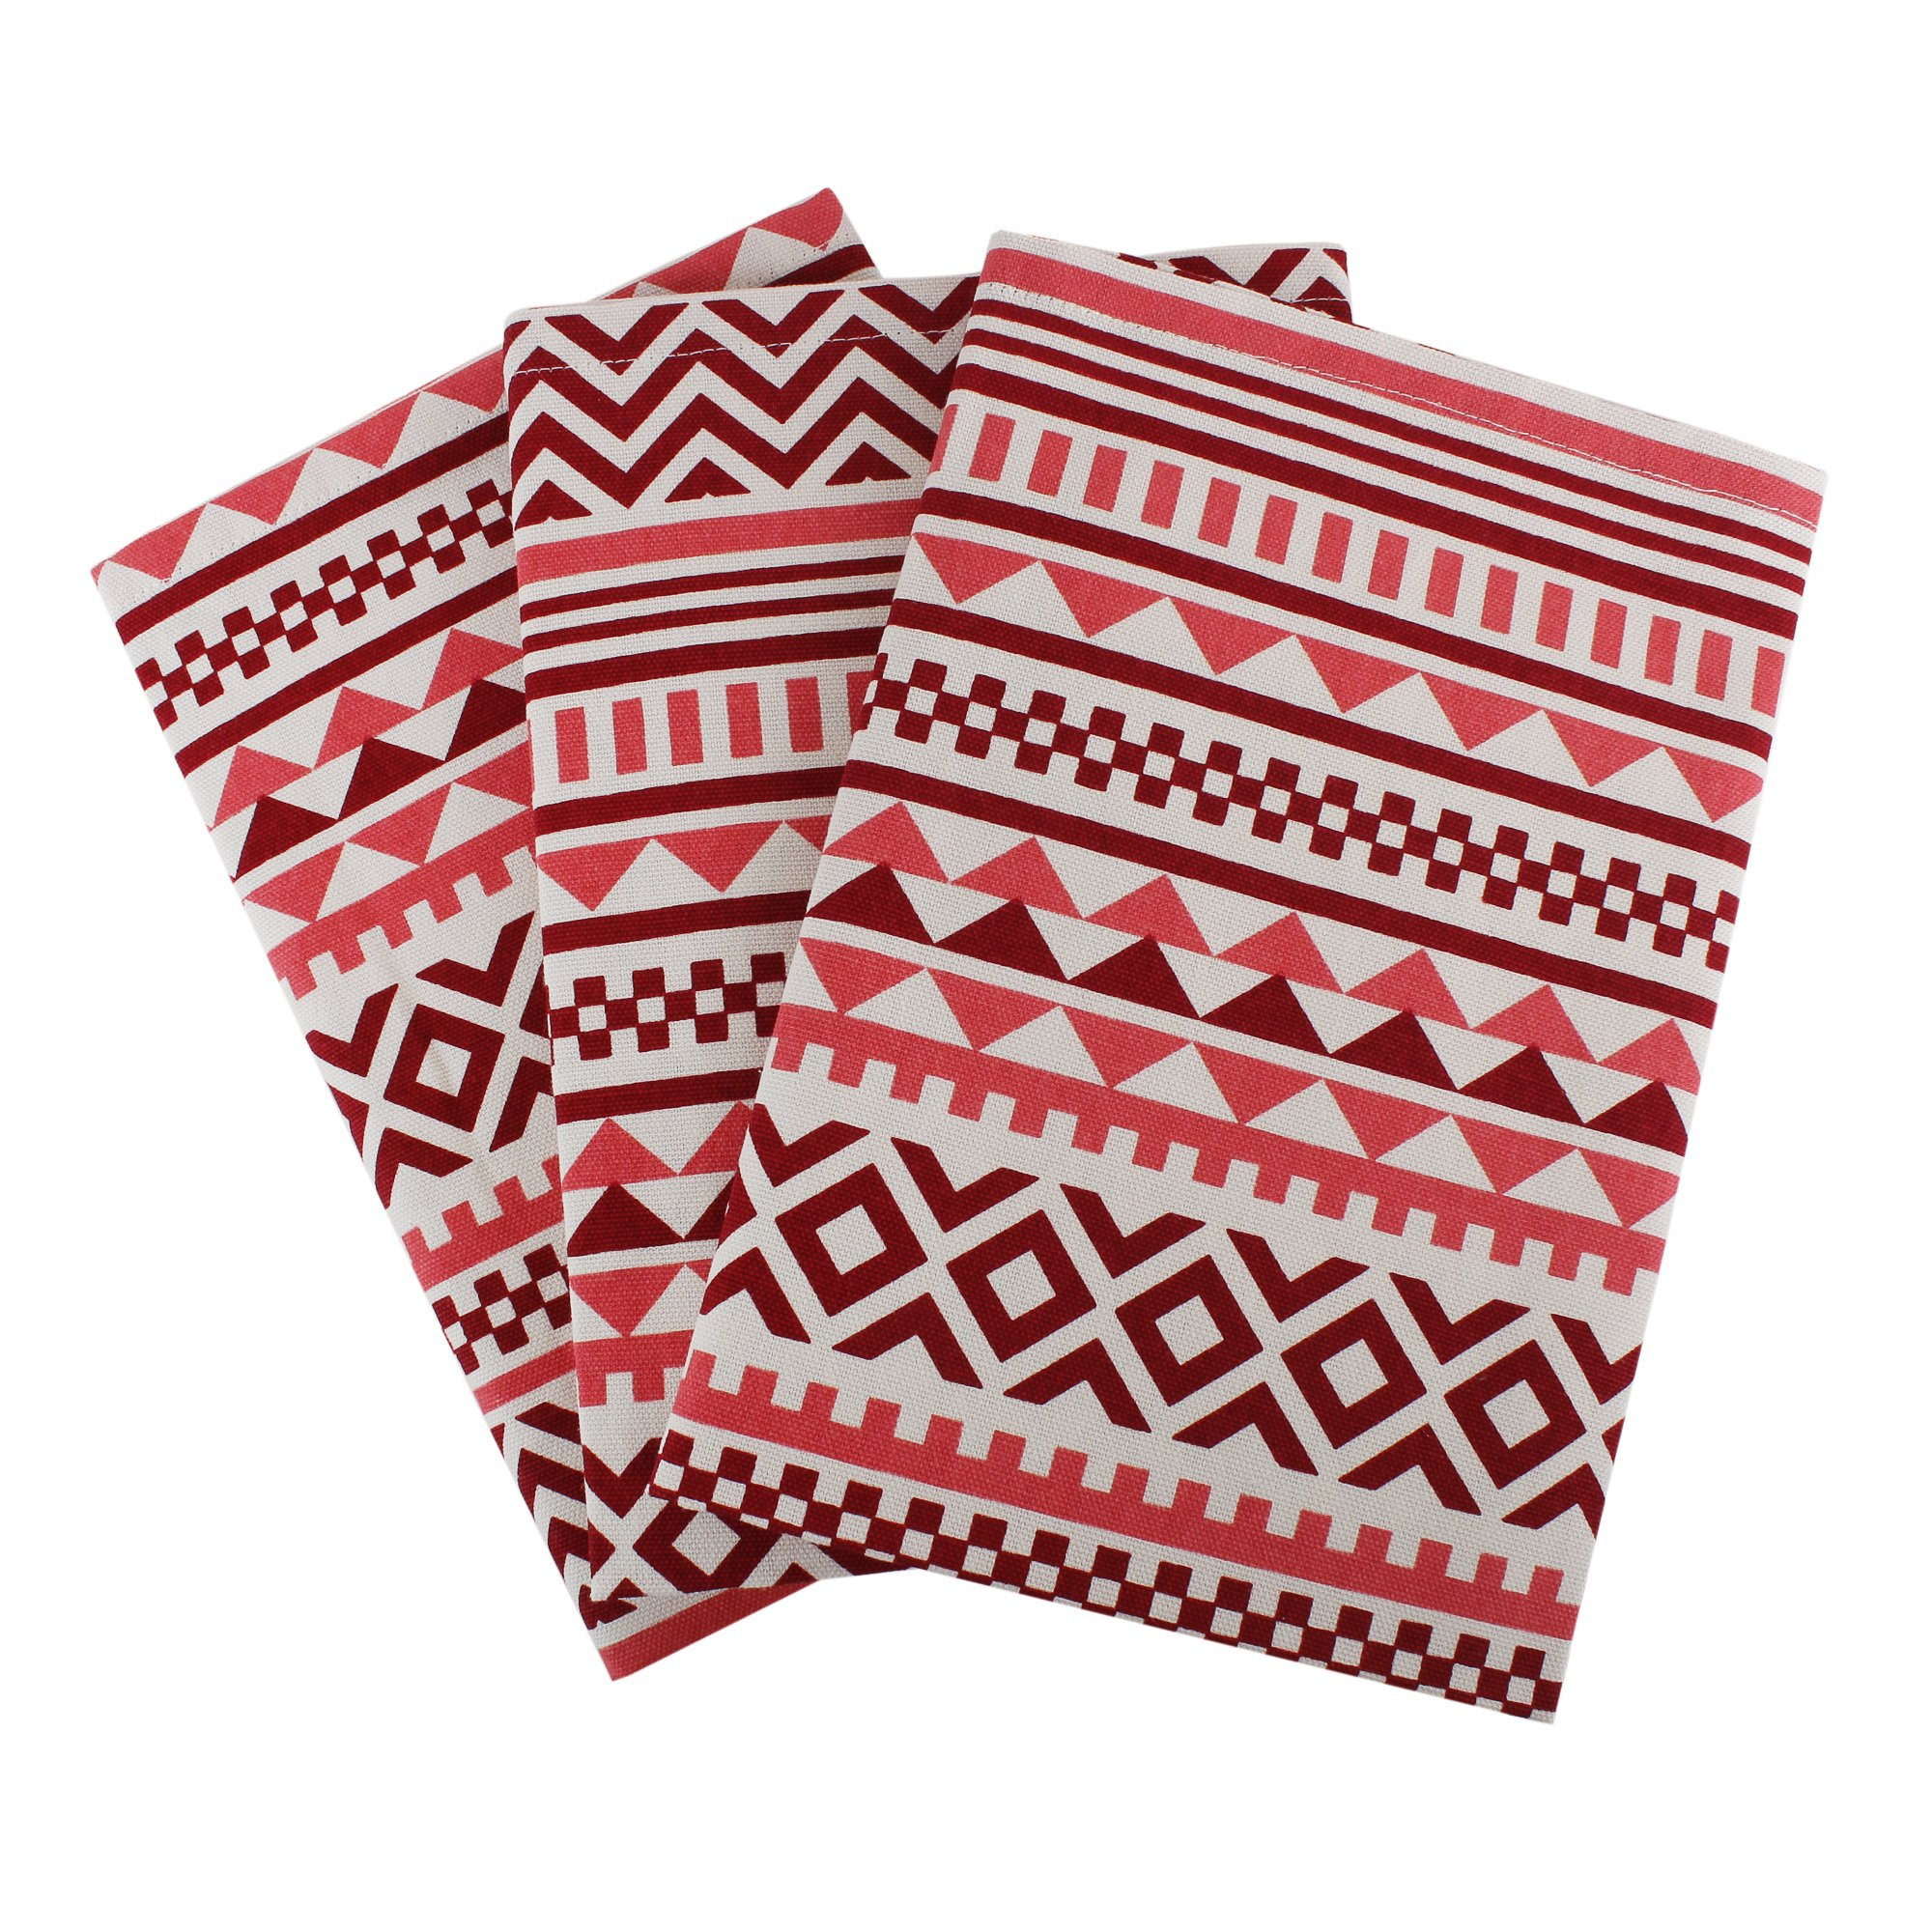 Set of 3 Kitchen Towels, 100% Cotton of size 18''X28 Inch, Eco - Friendly & Safe, Aztec Design for Kitchen